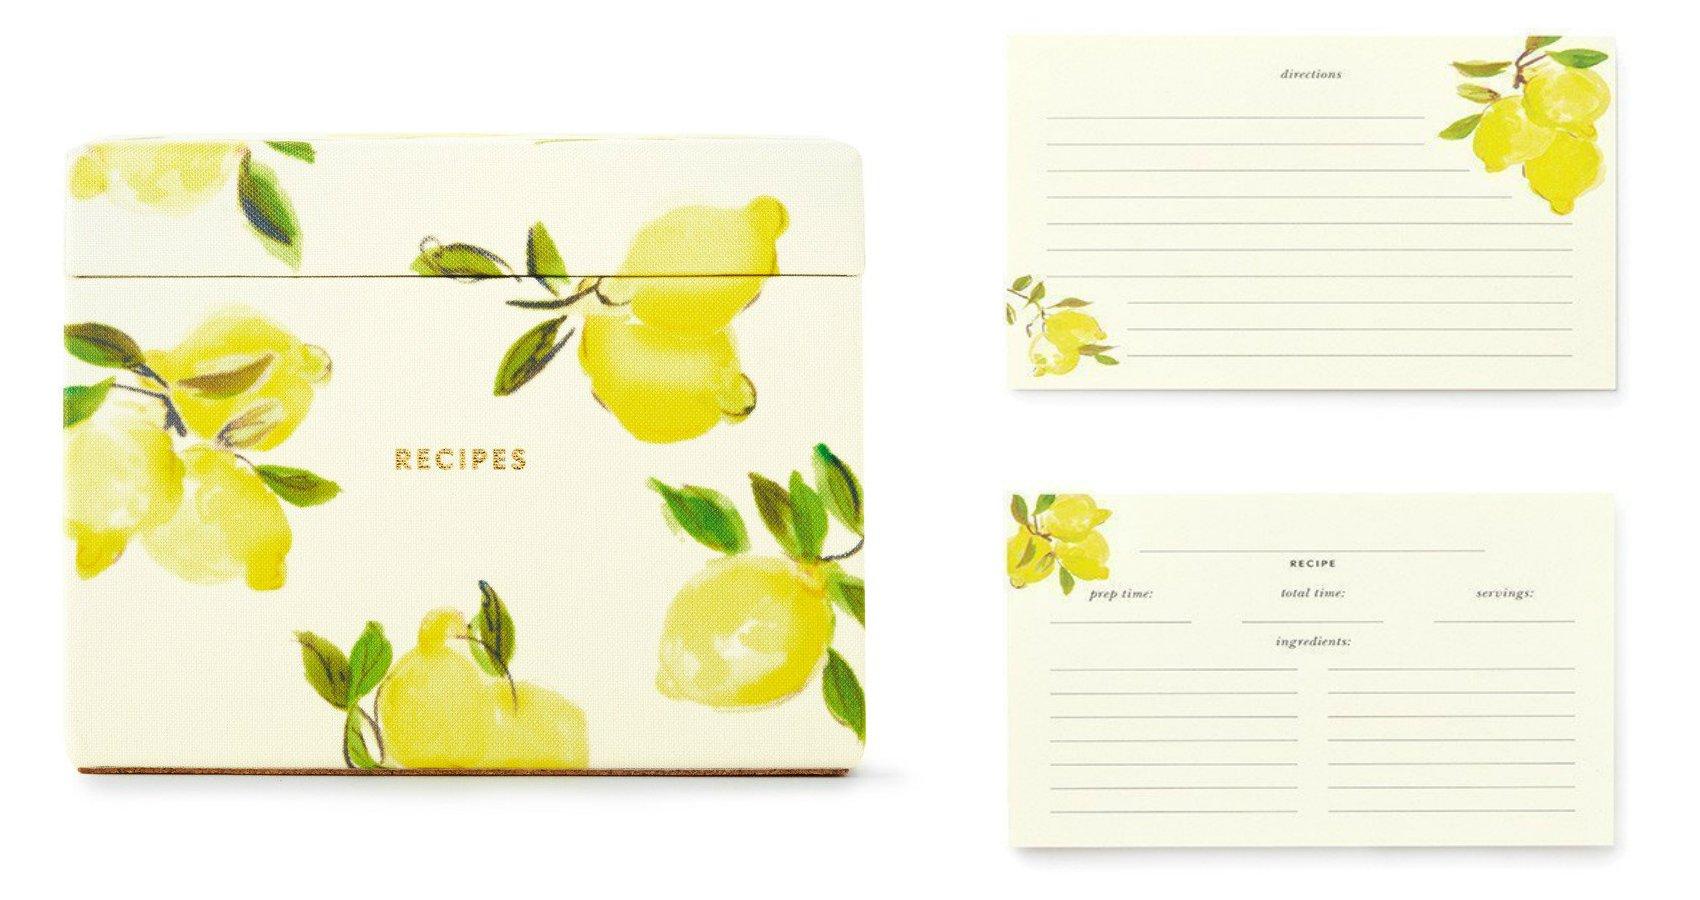 Kate Spade New York Women's Recipe Box Card Holder with Tabbed Dividers and 80 Recipe Cards Set, Lemon by Kate Spade New York